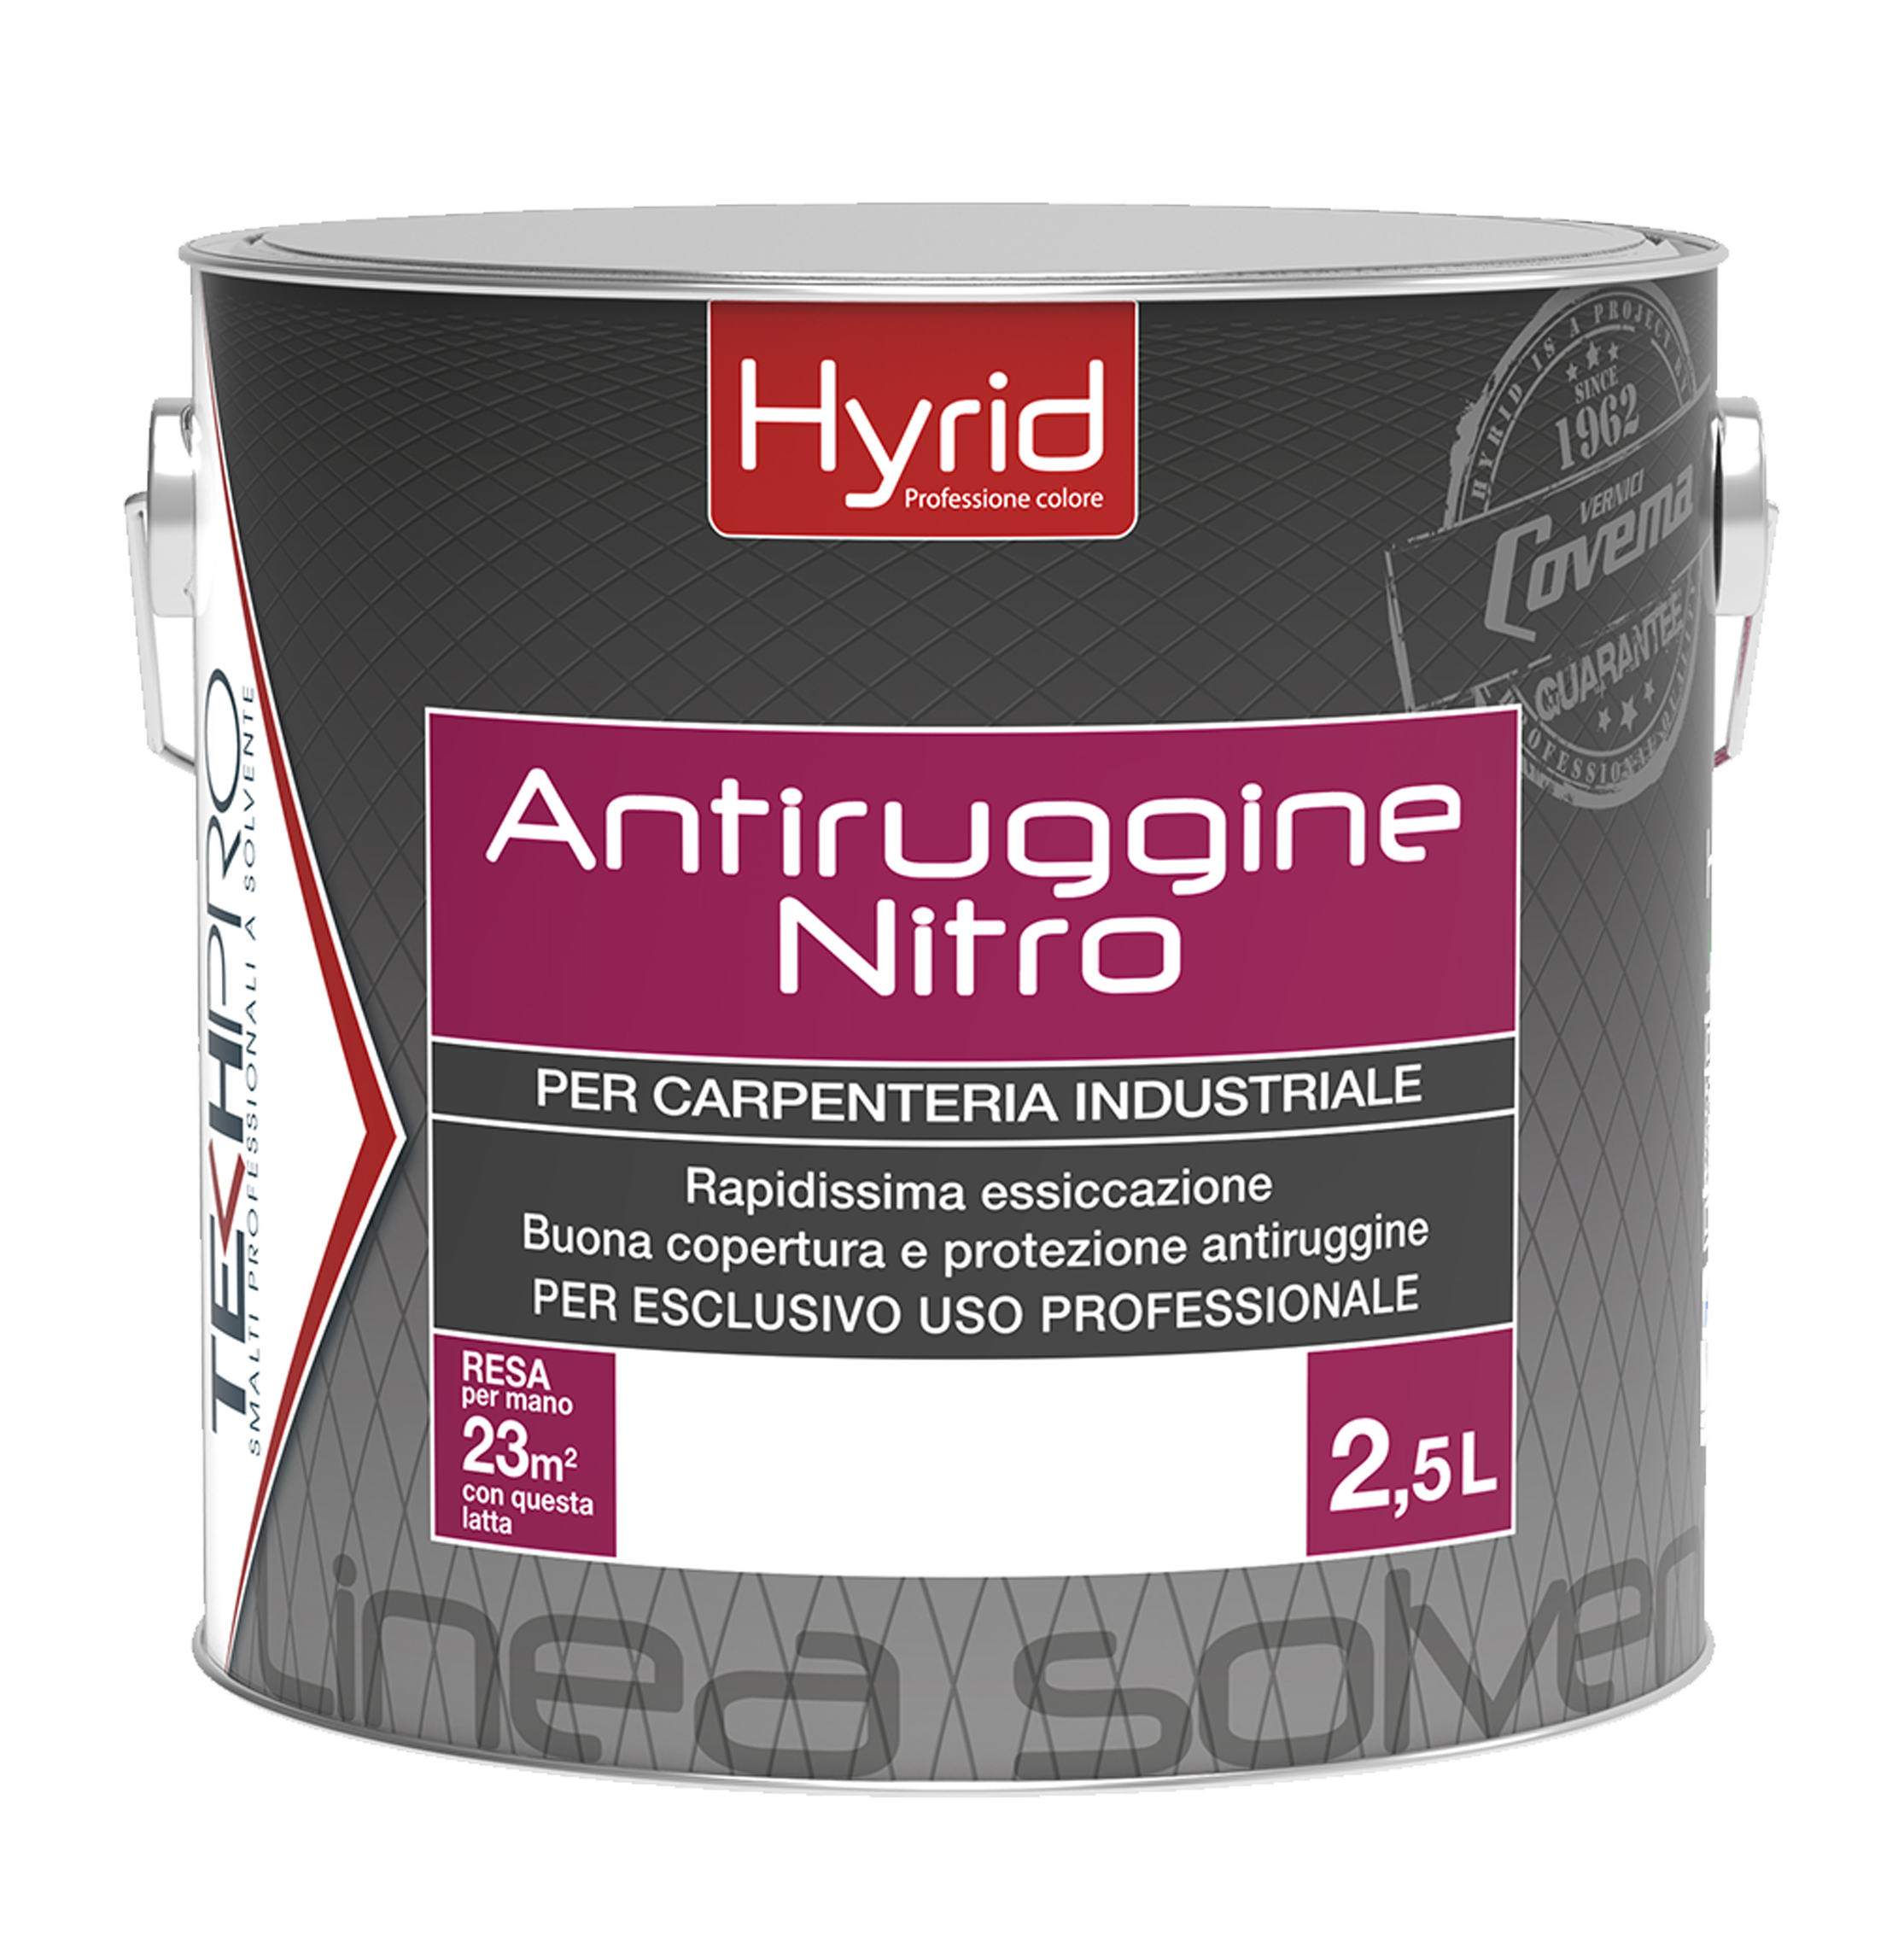 Hyrid Antiruggine Nitro